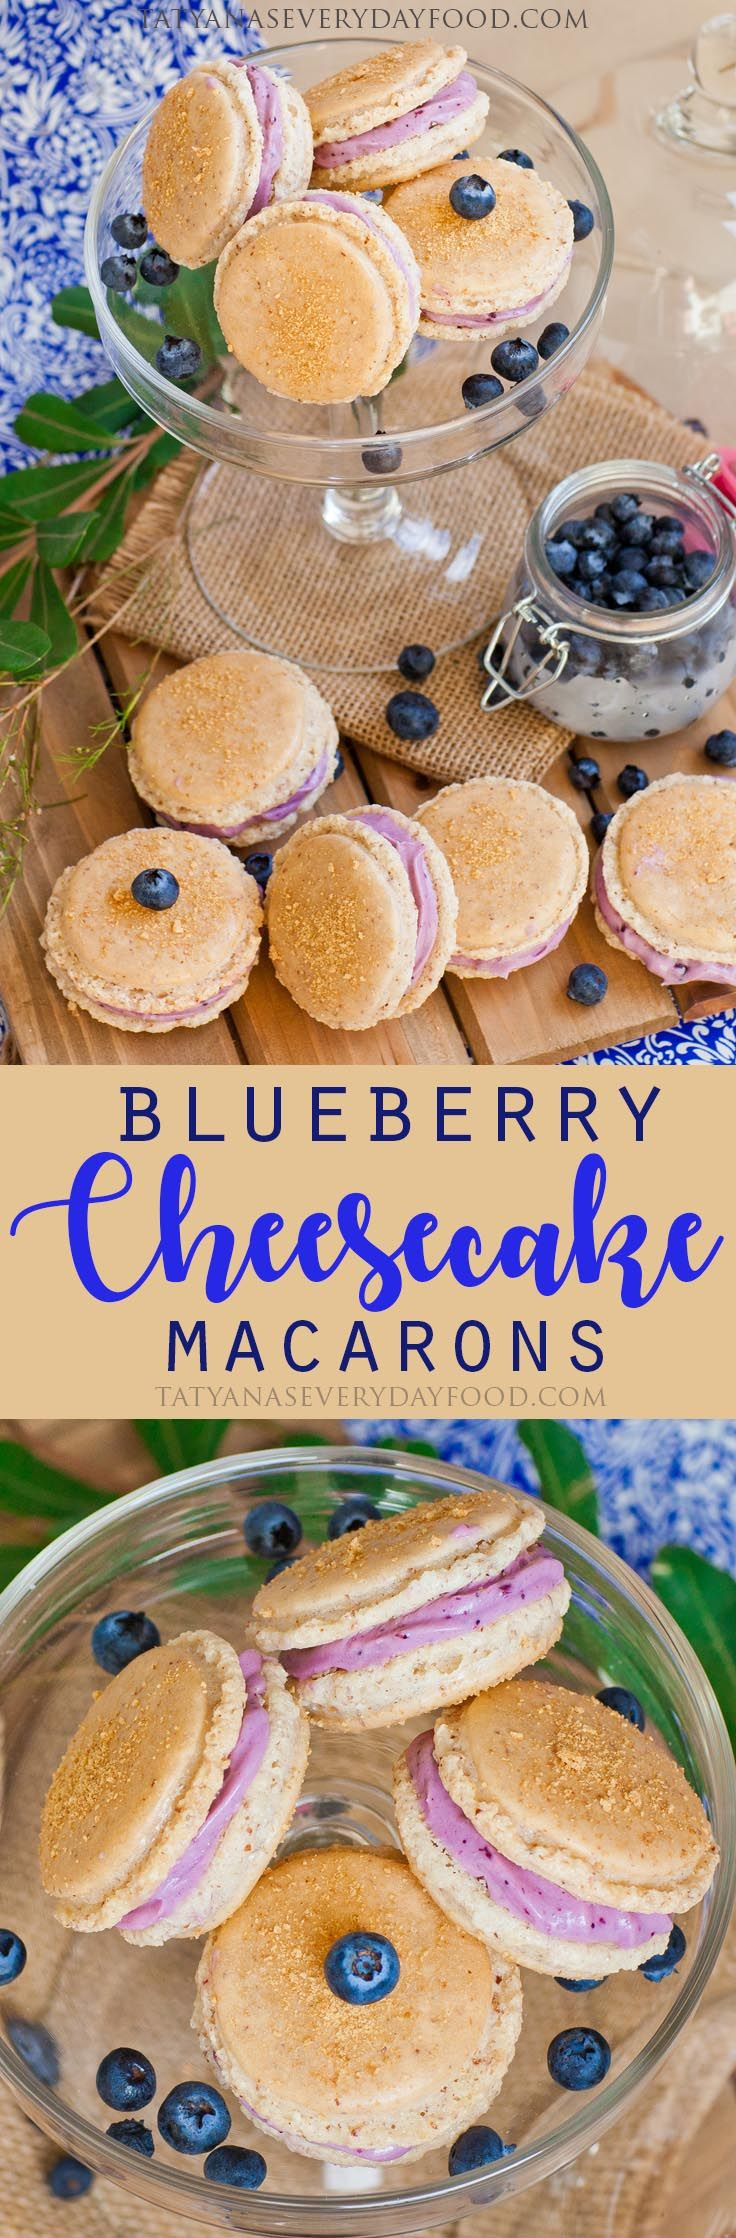 The macarons wafers are dusted with graham cracker crumbs and the blueberry cream cheese filling is irresistible! View Recipe Link